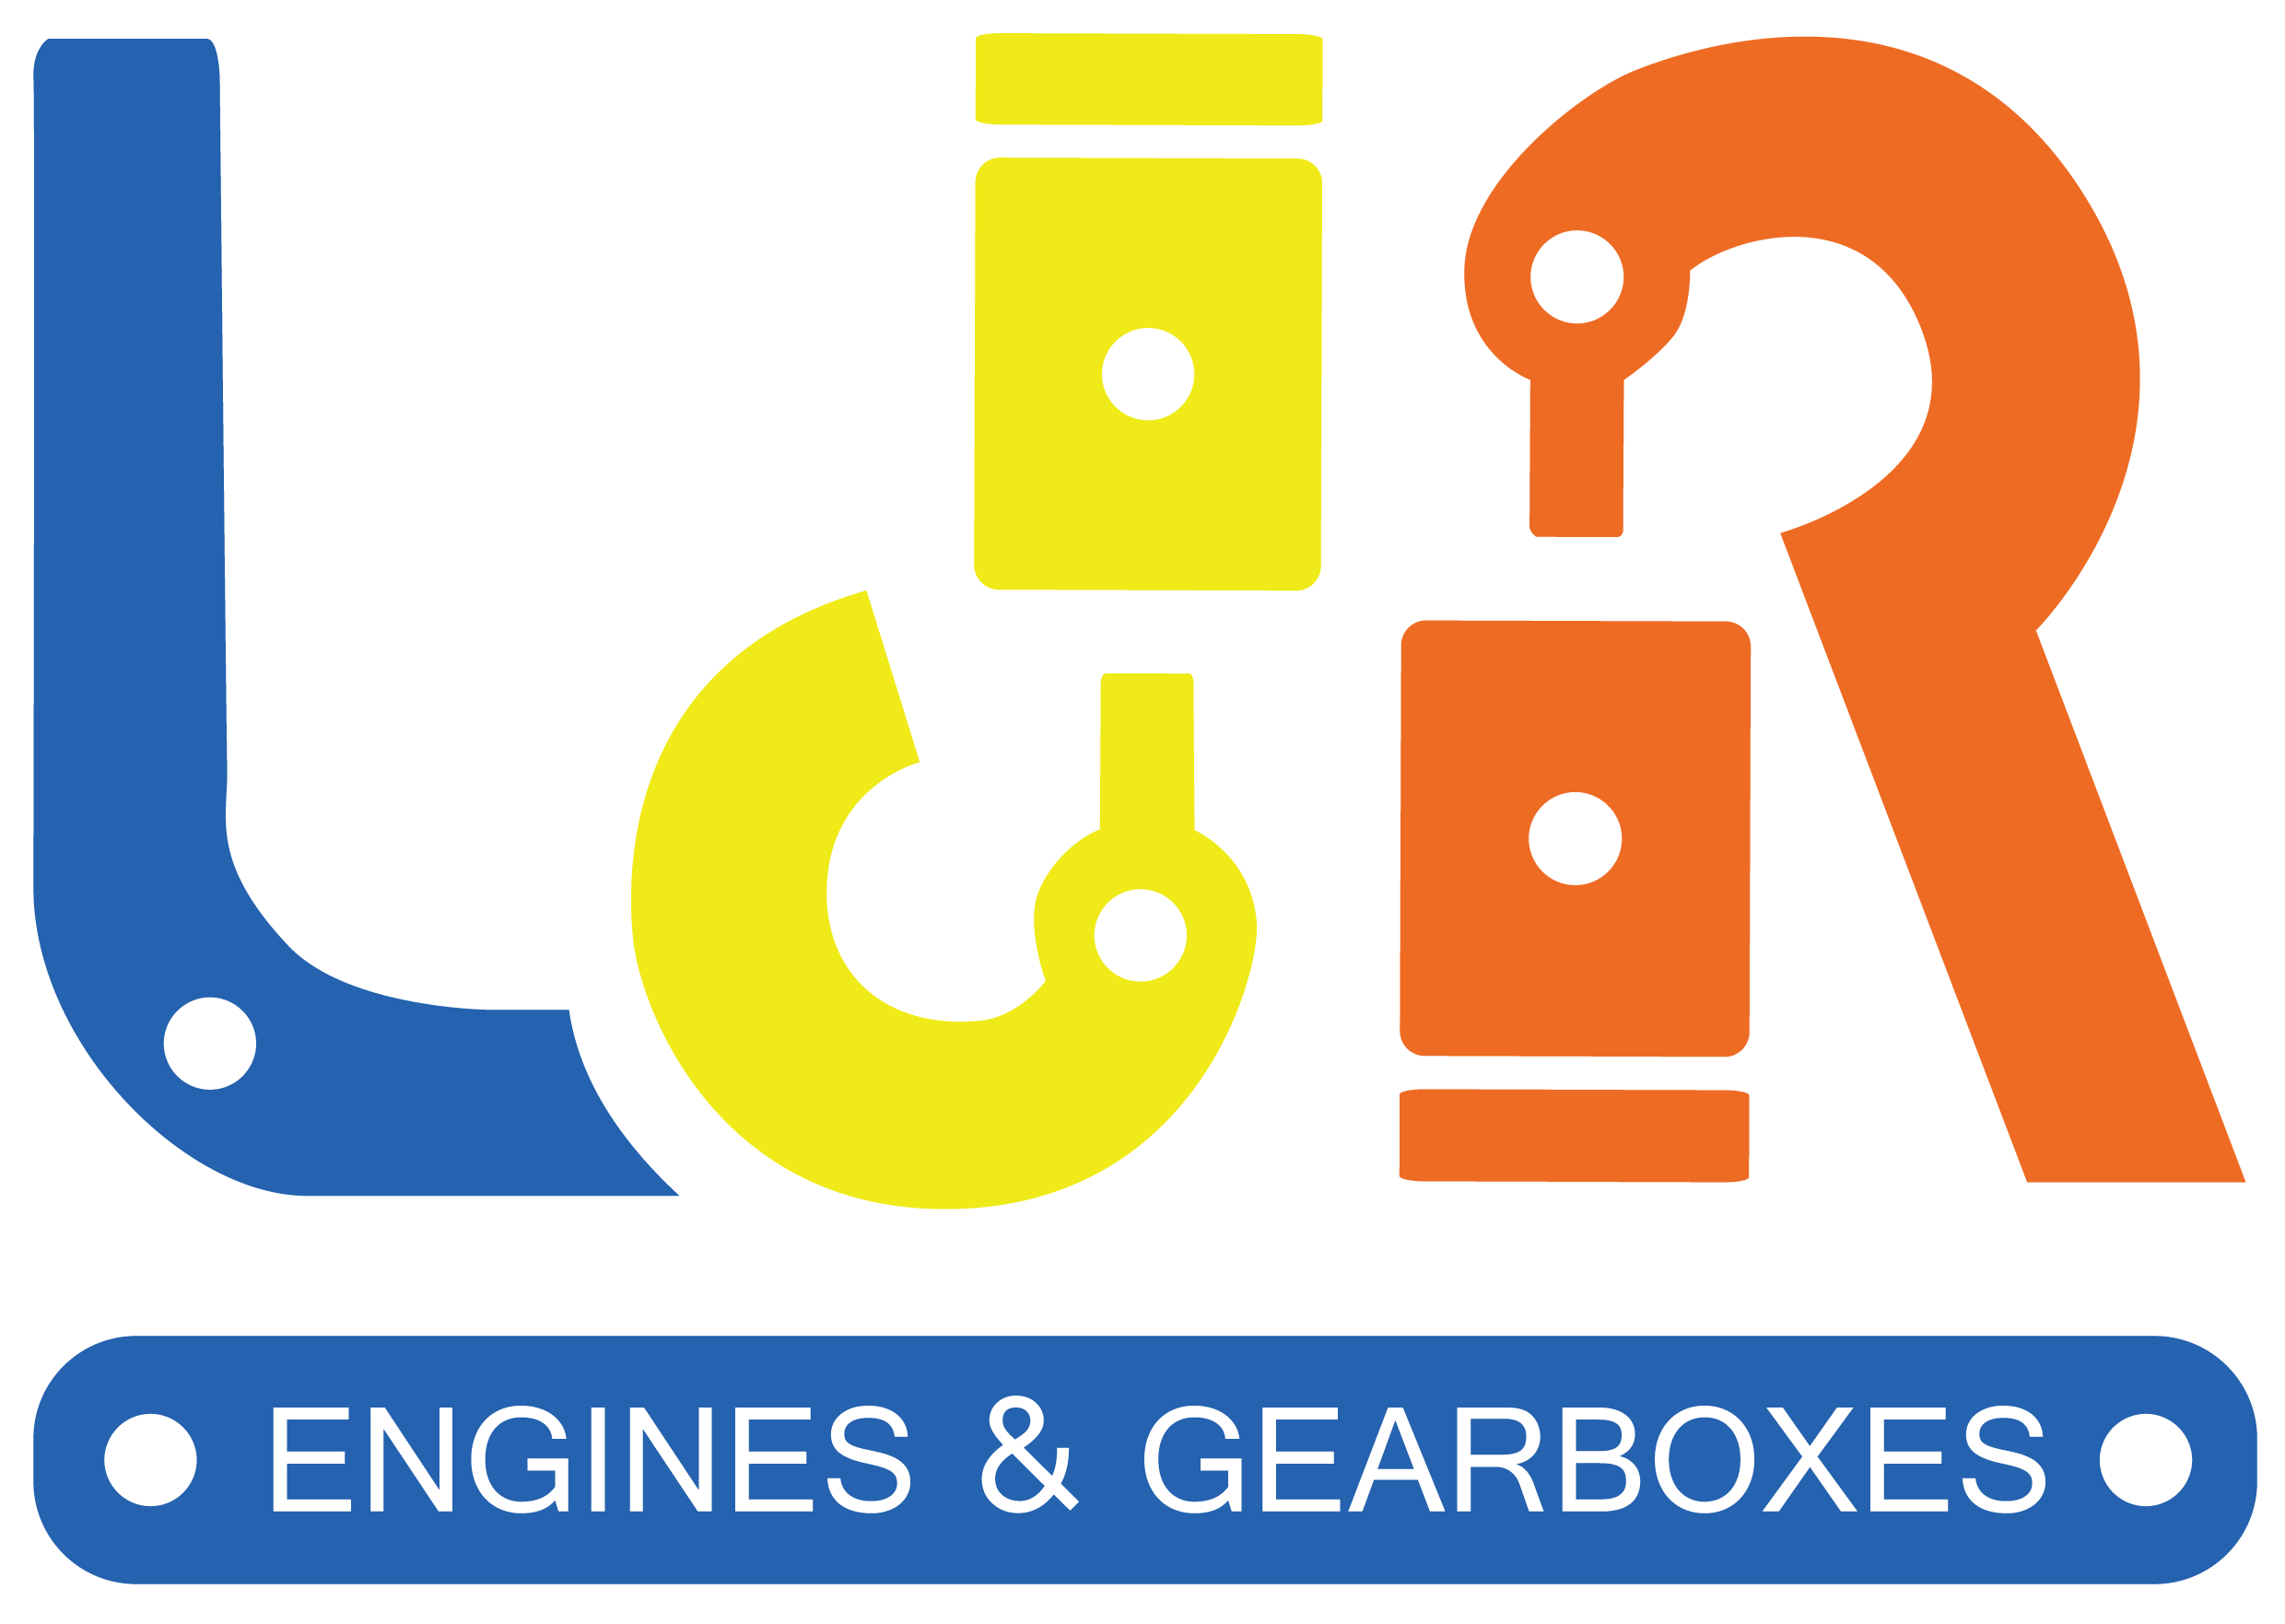 Peri-Peri-Creative-LDR-Engines logo colour